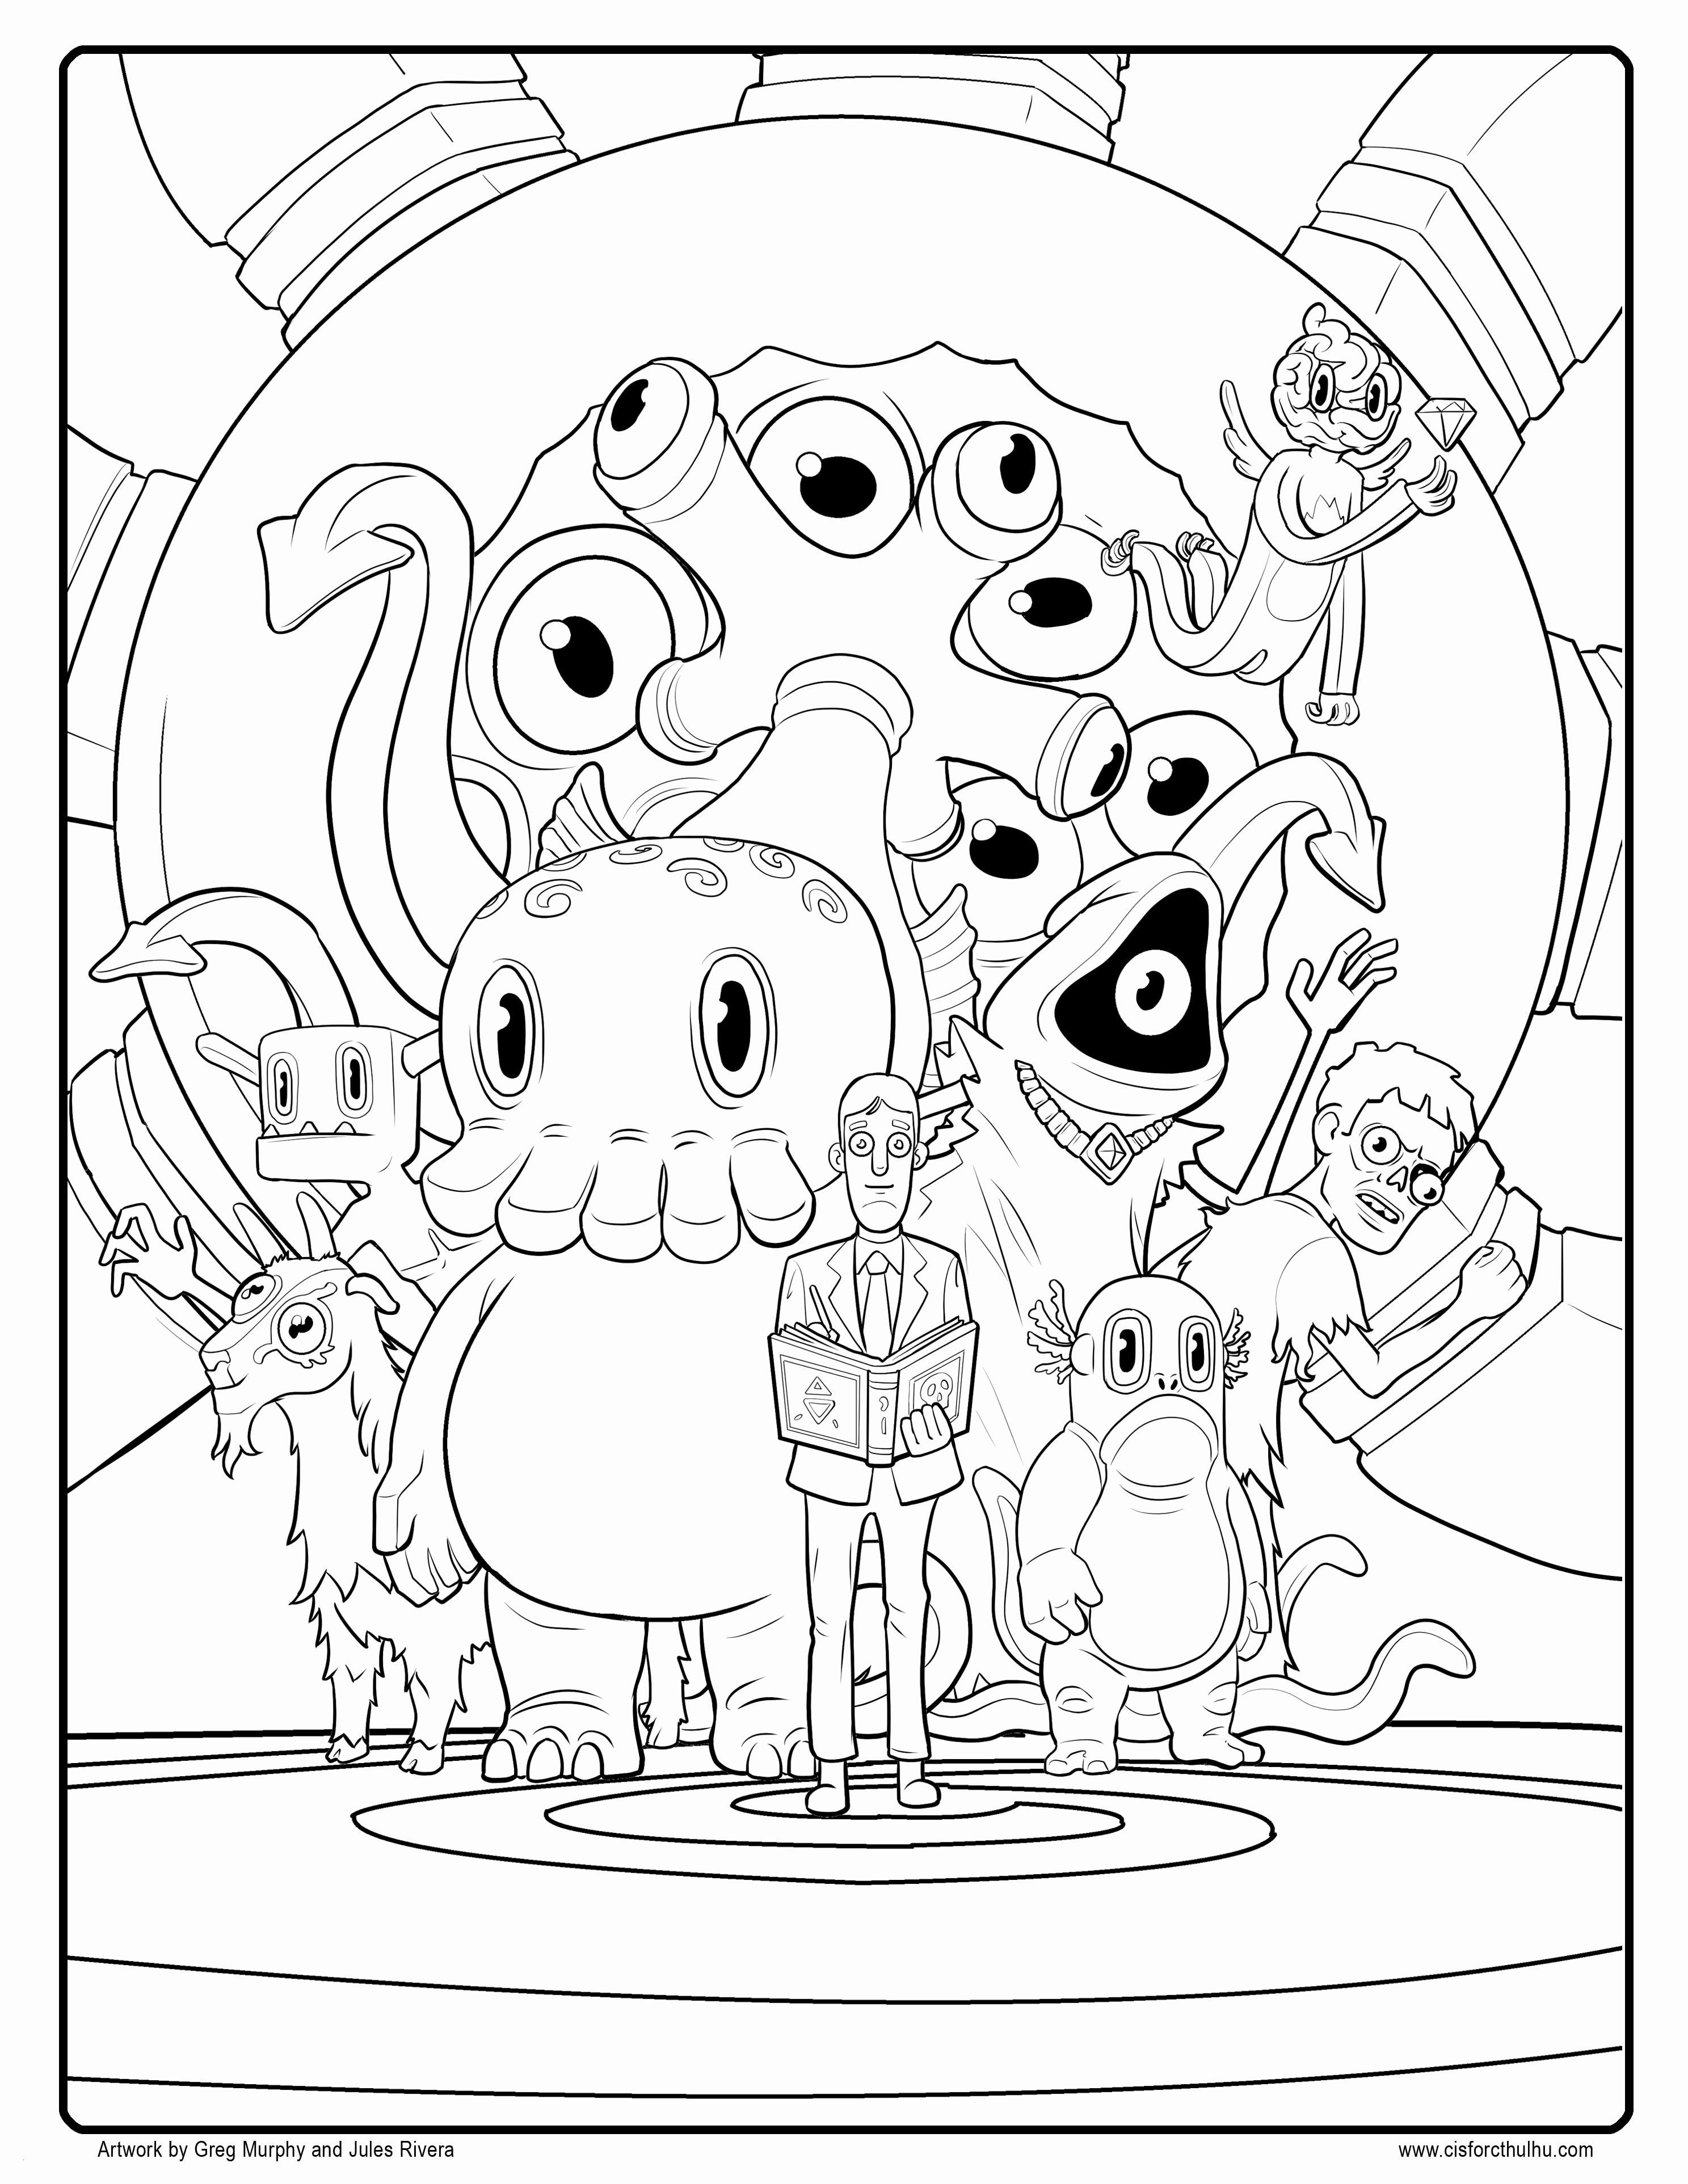 Teddy Bear Coloring Pages to Print  Collection 15a - To print for your project